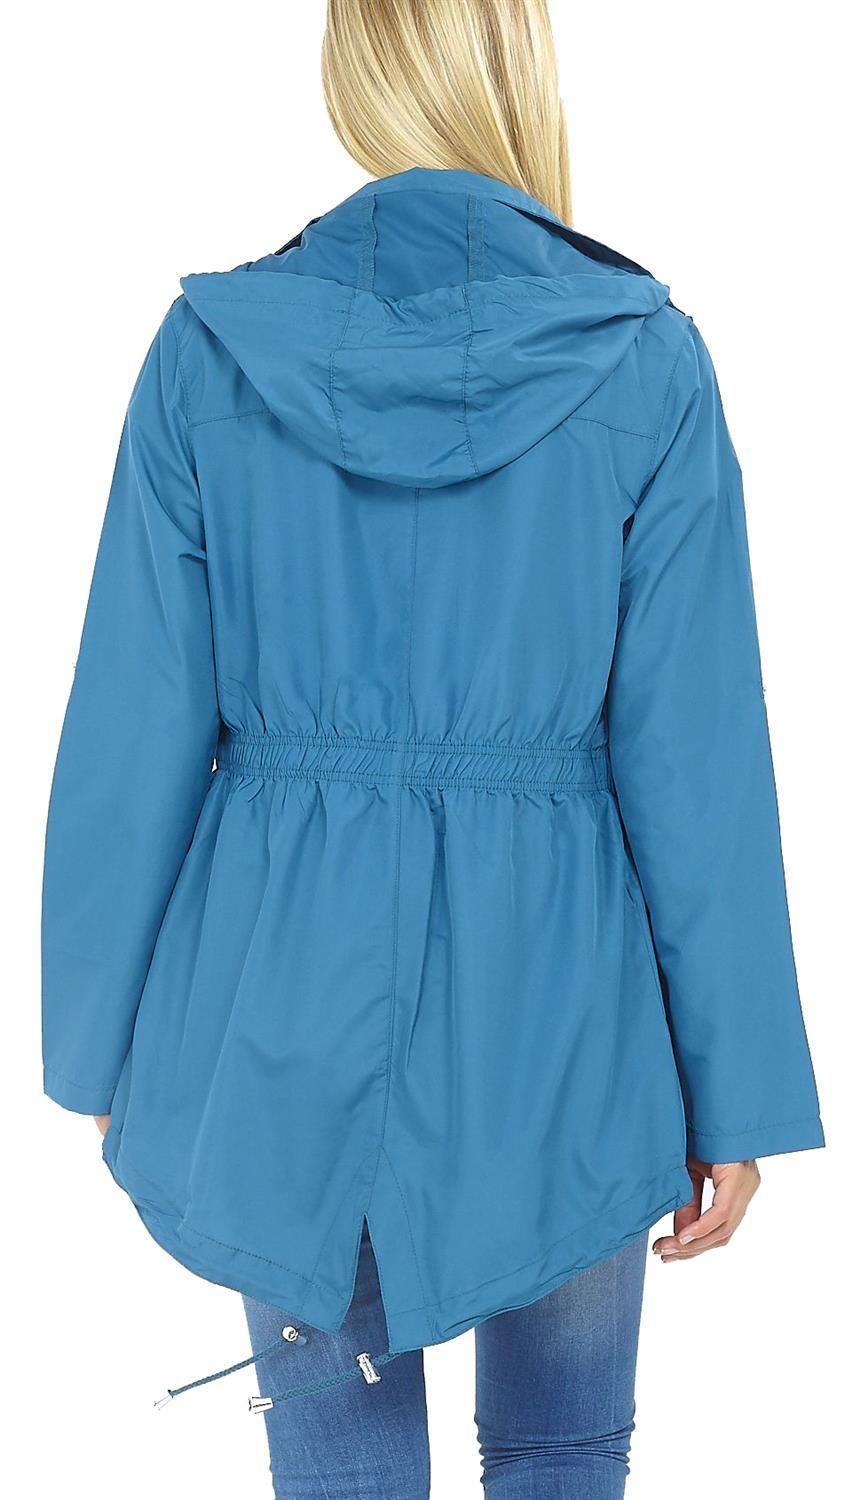 New Womens Drawstring Detachable Hooded Mac Parka Fishtail Raincoats Jackets